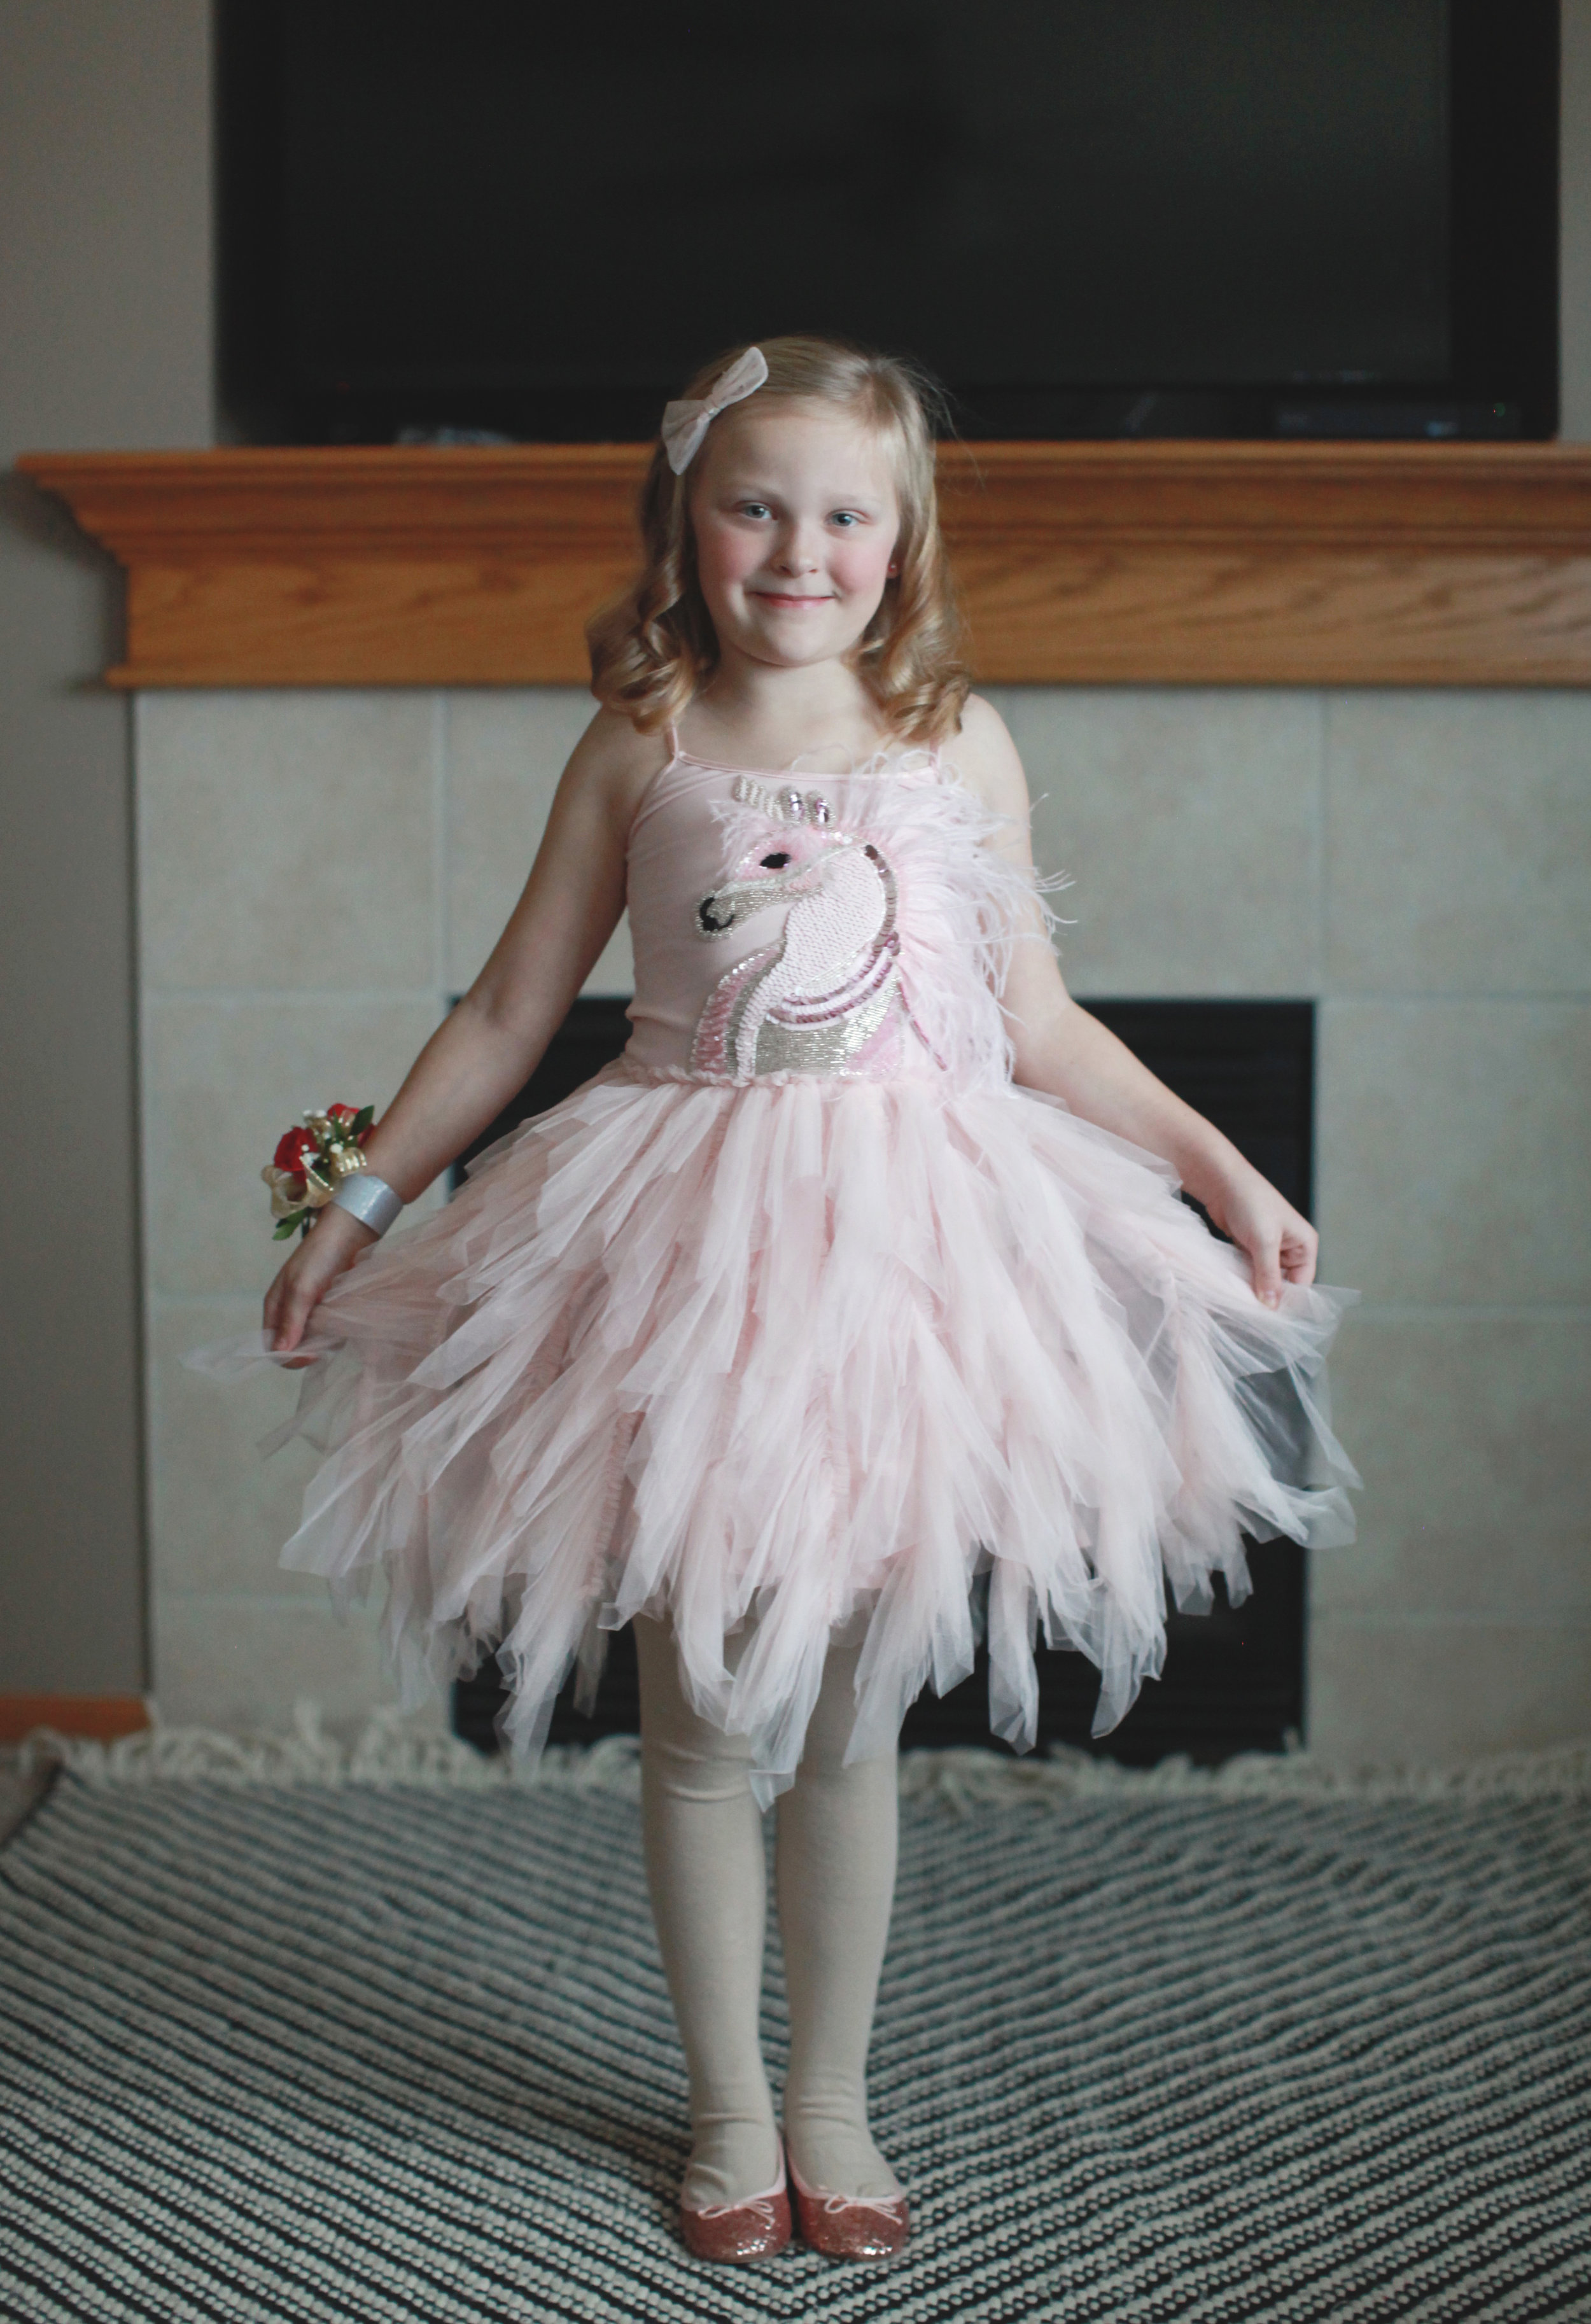 dress and bow from Rainey's Closet, shoes are Crewcuts and tights are Zara